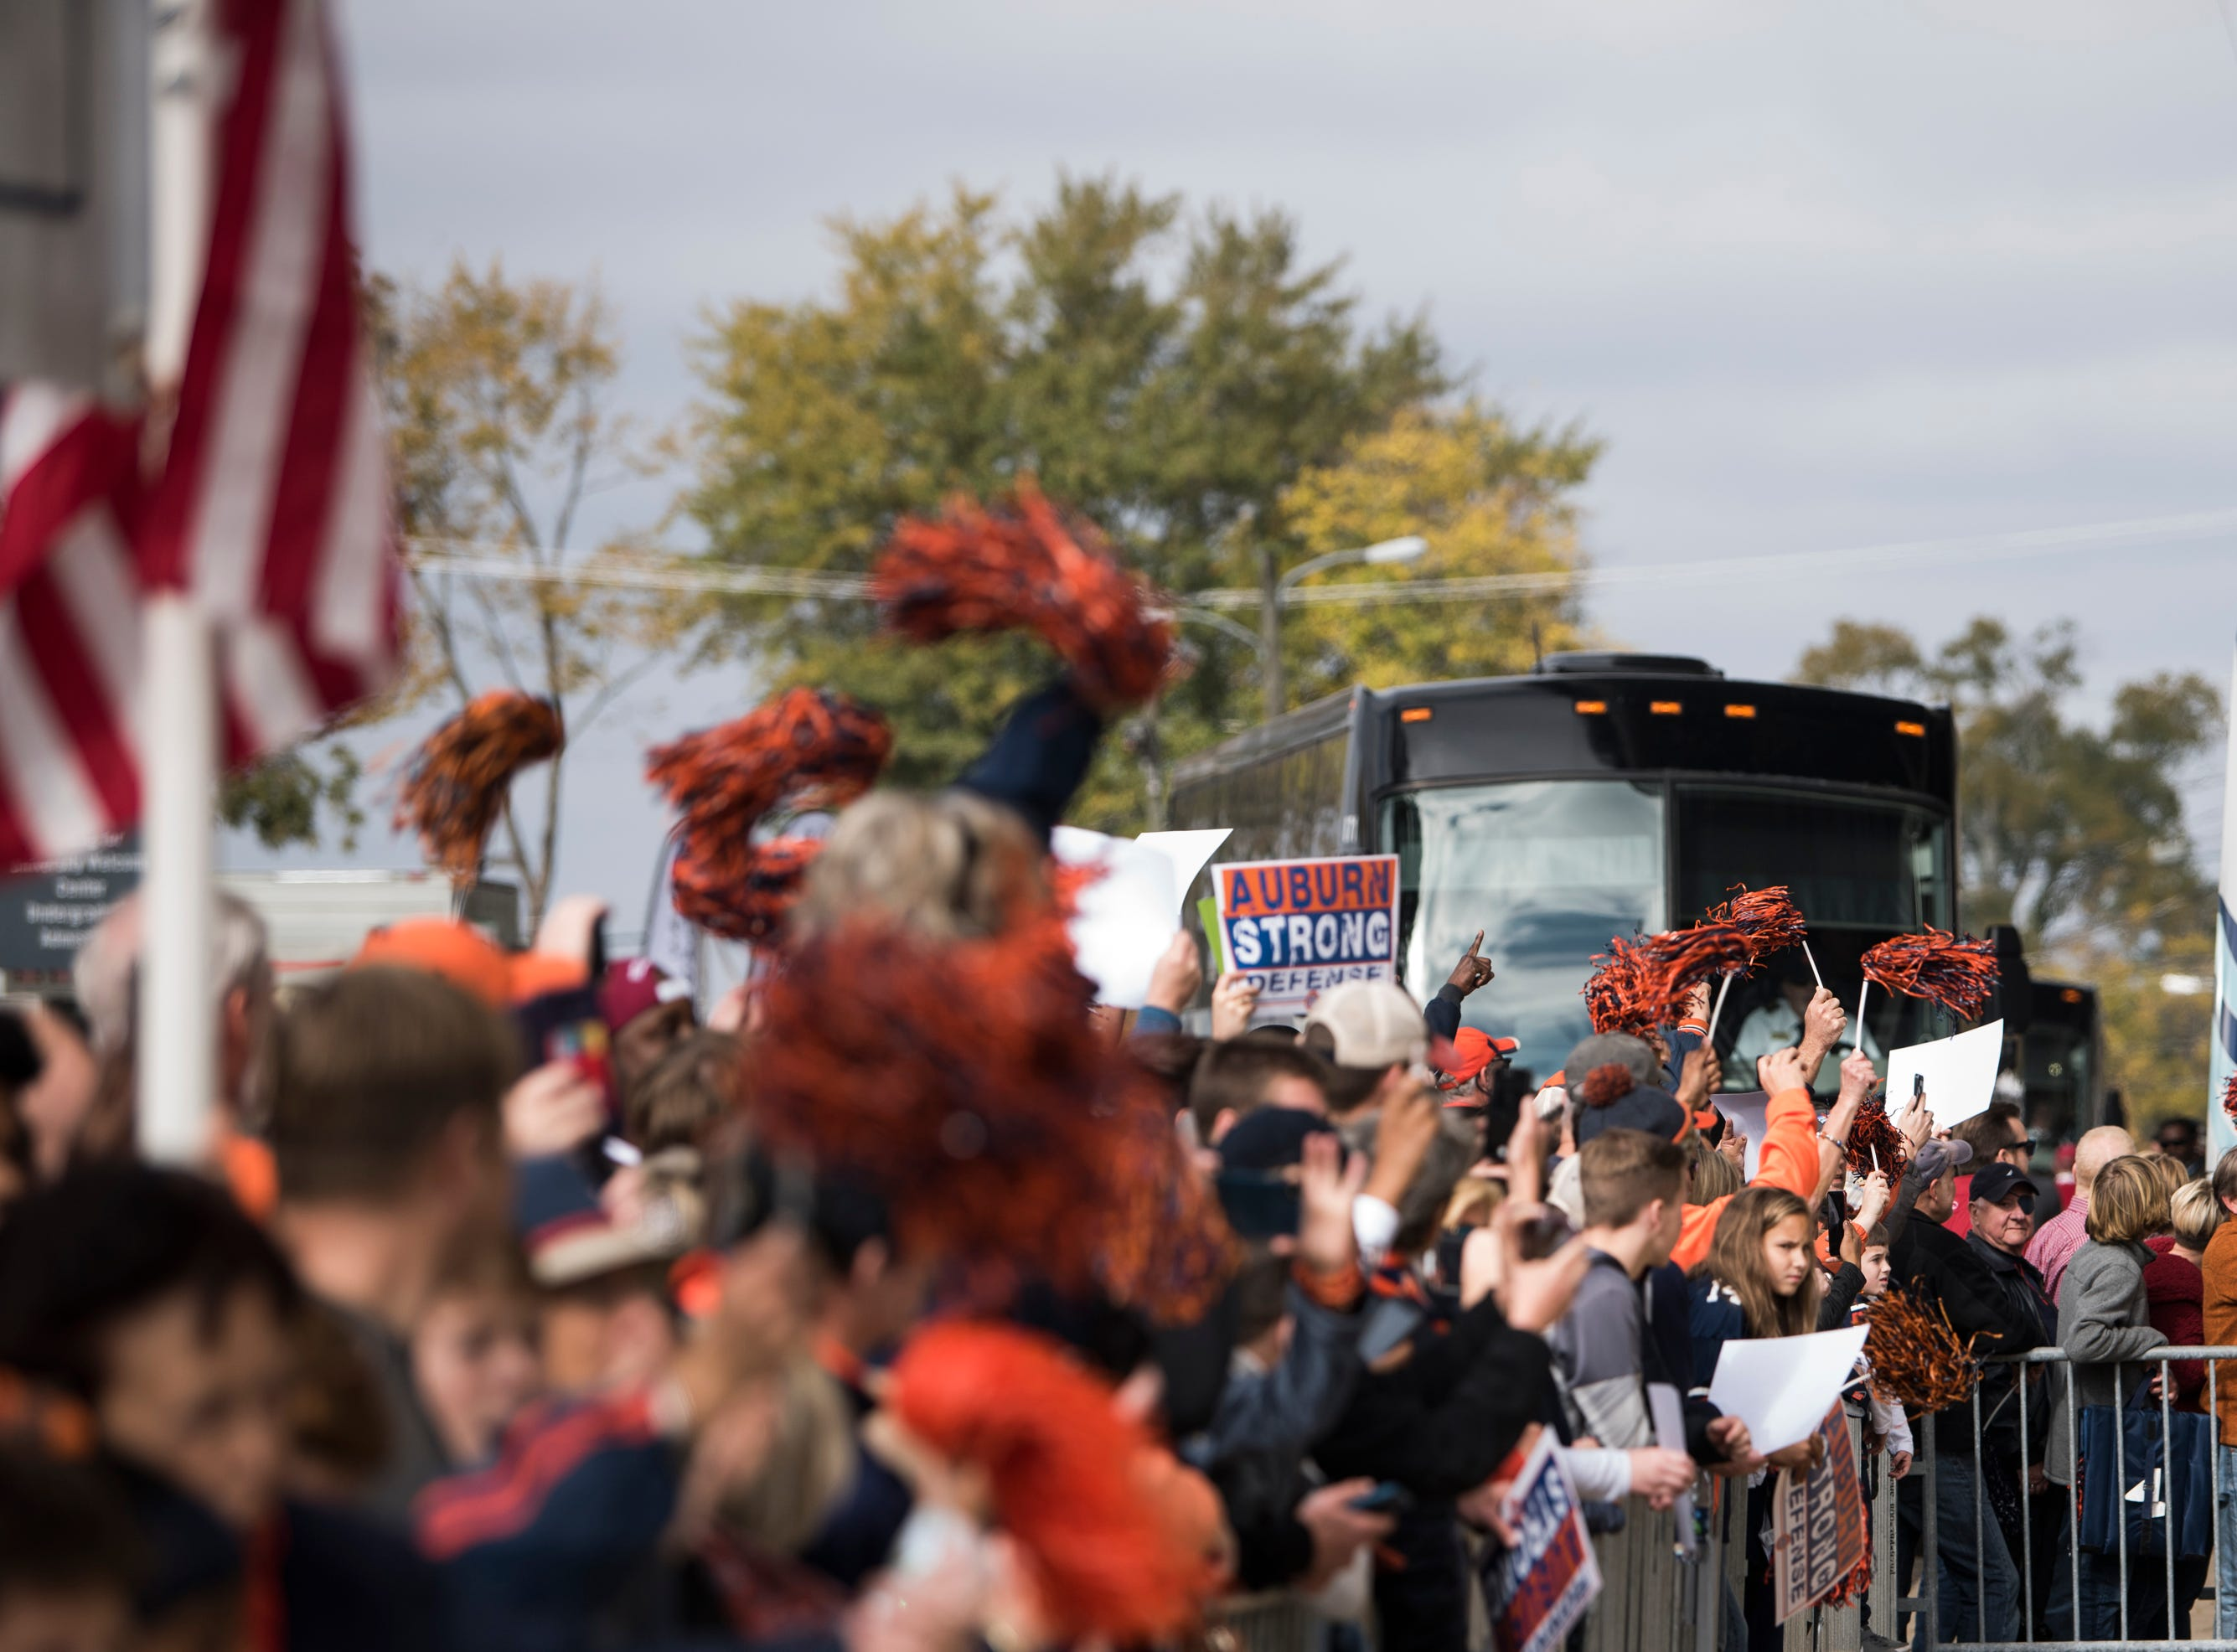 Auburn fans cheer as the team arrives at Bryant-Denny Stadium in Tuscaloosa, Ala., on Saturday, Nov. 24, 2018.